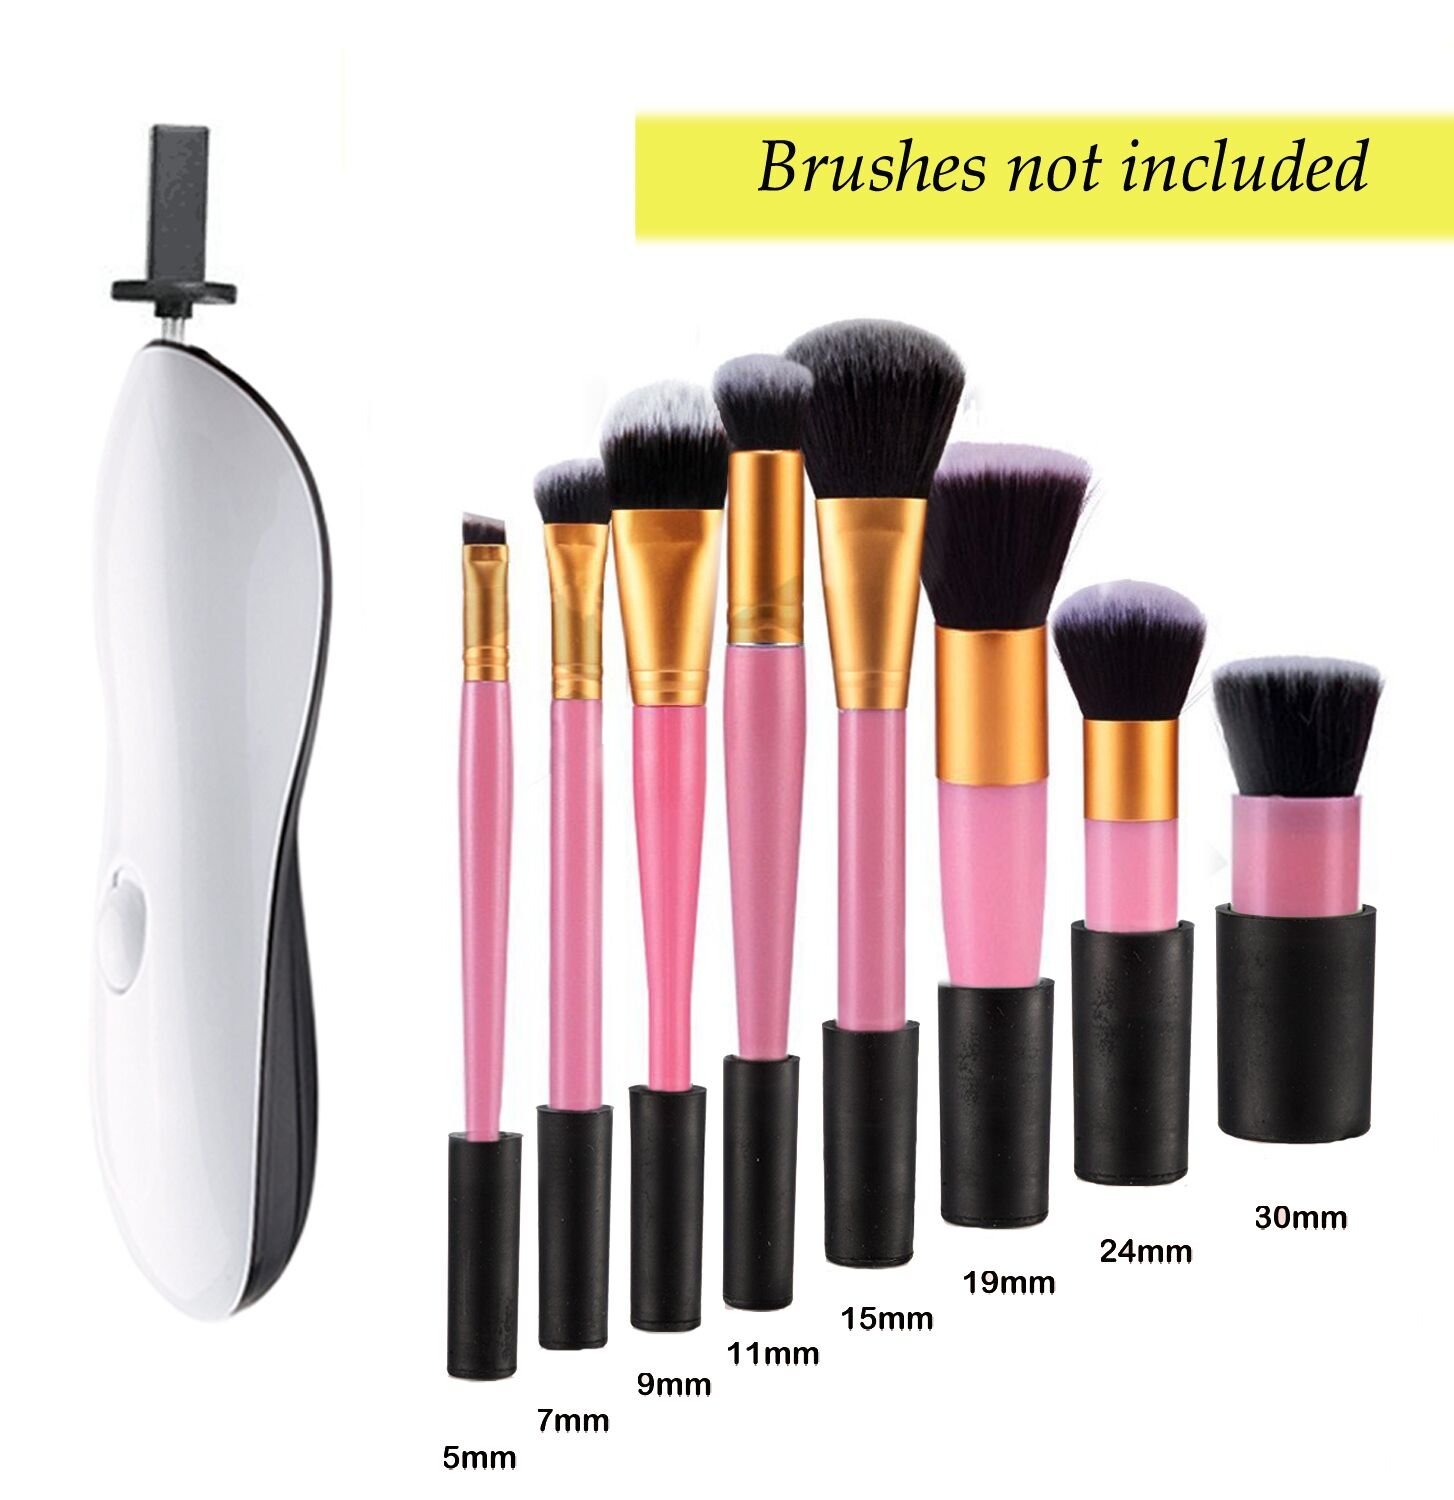 Brush Cleaner, Clean Makeup Brush – One Brush Cleaning Machine, Dry Makeup Brushes for Makeup Brush set in Seconds(Without Brush,White)